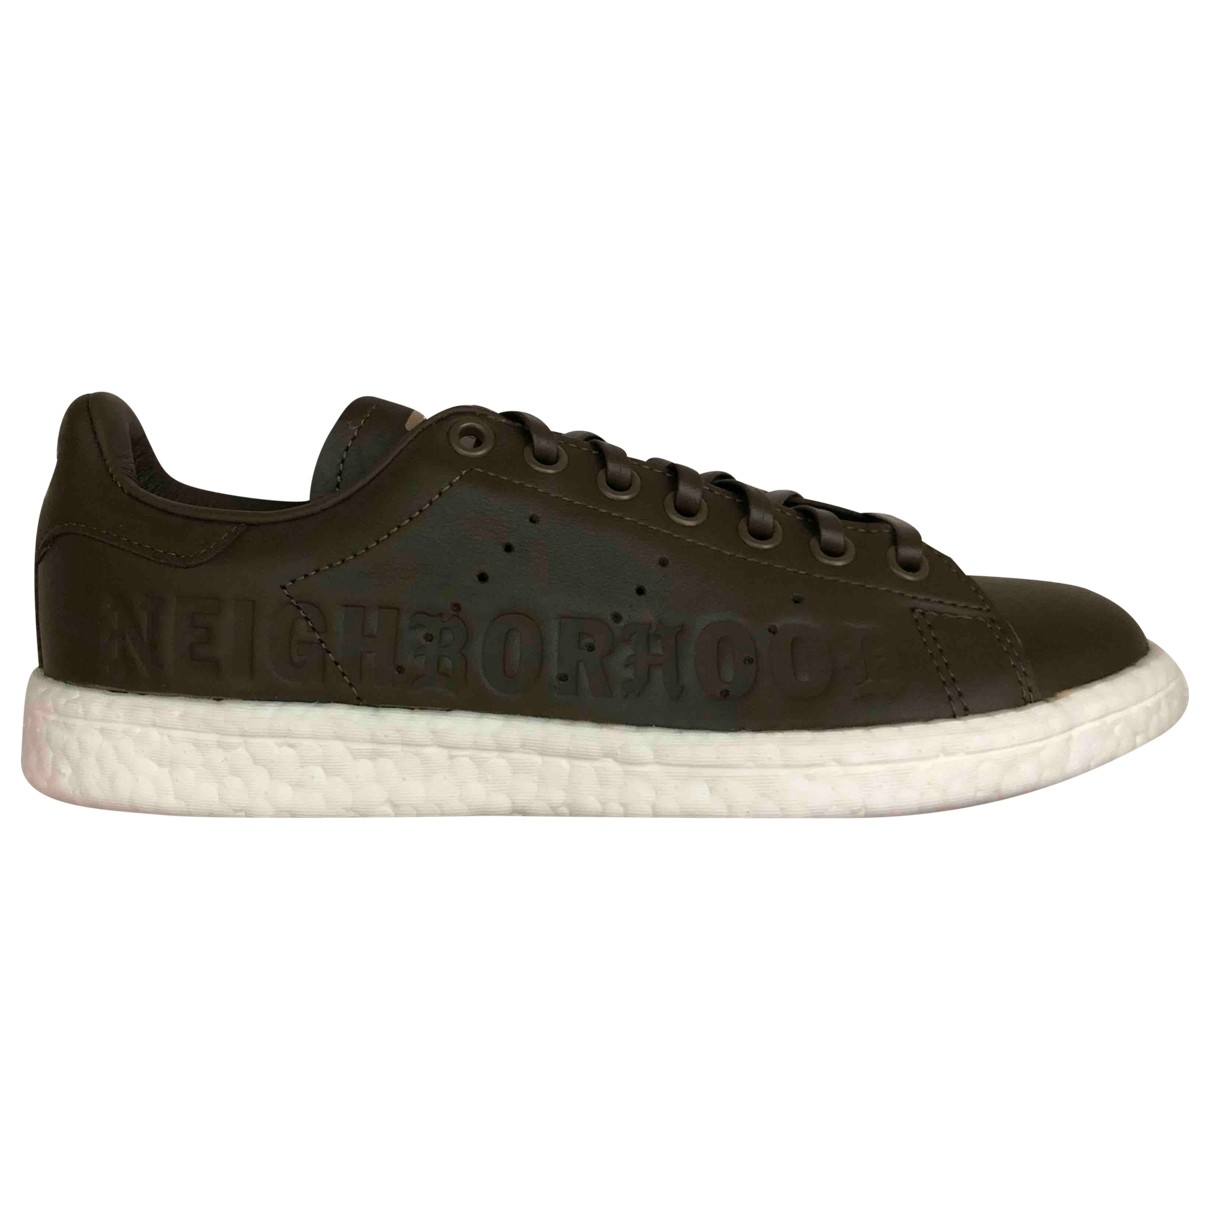 Adidas Stan Smith Green Leather Trainers for Men 40 EU